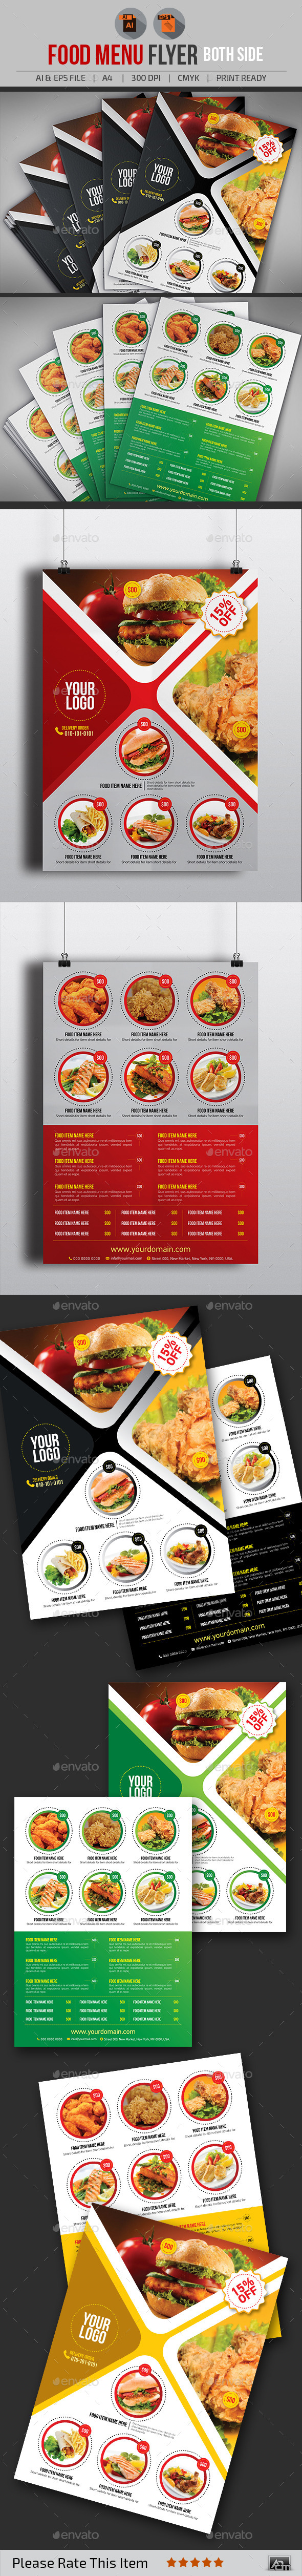 GraphicRiver Food Menu Flyer V2 11280247